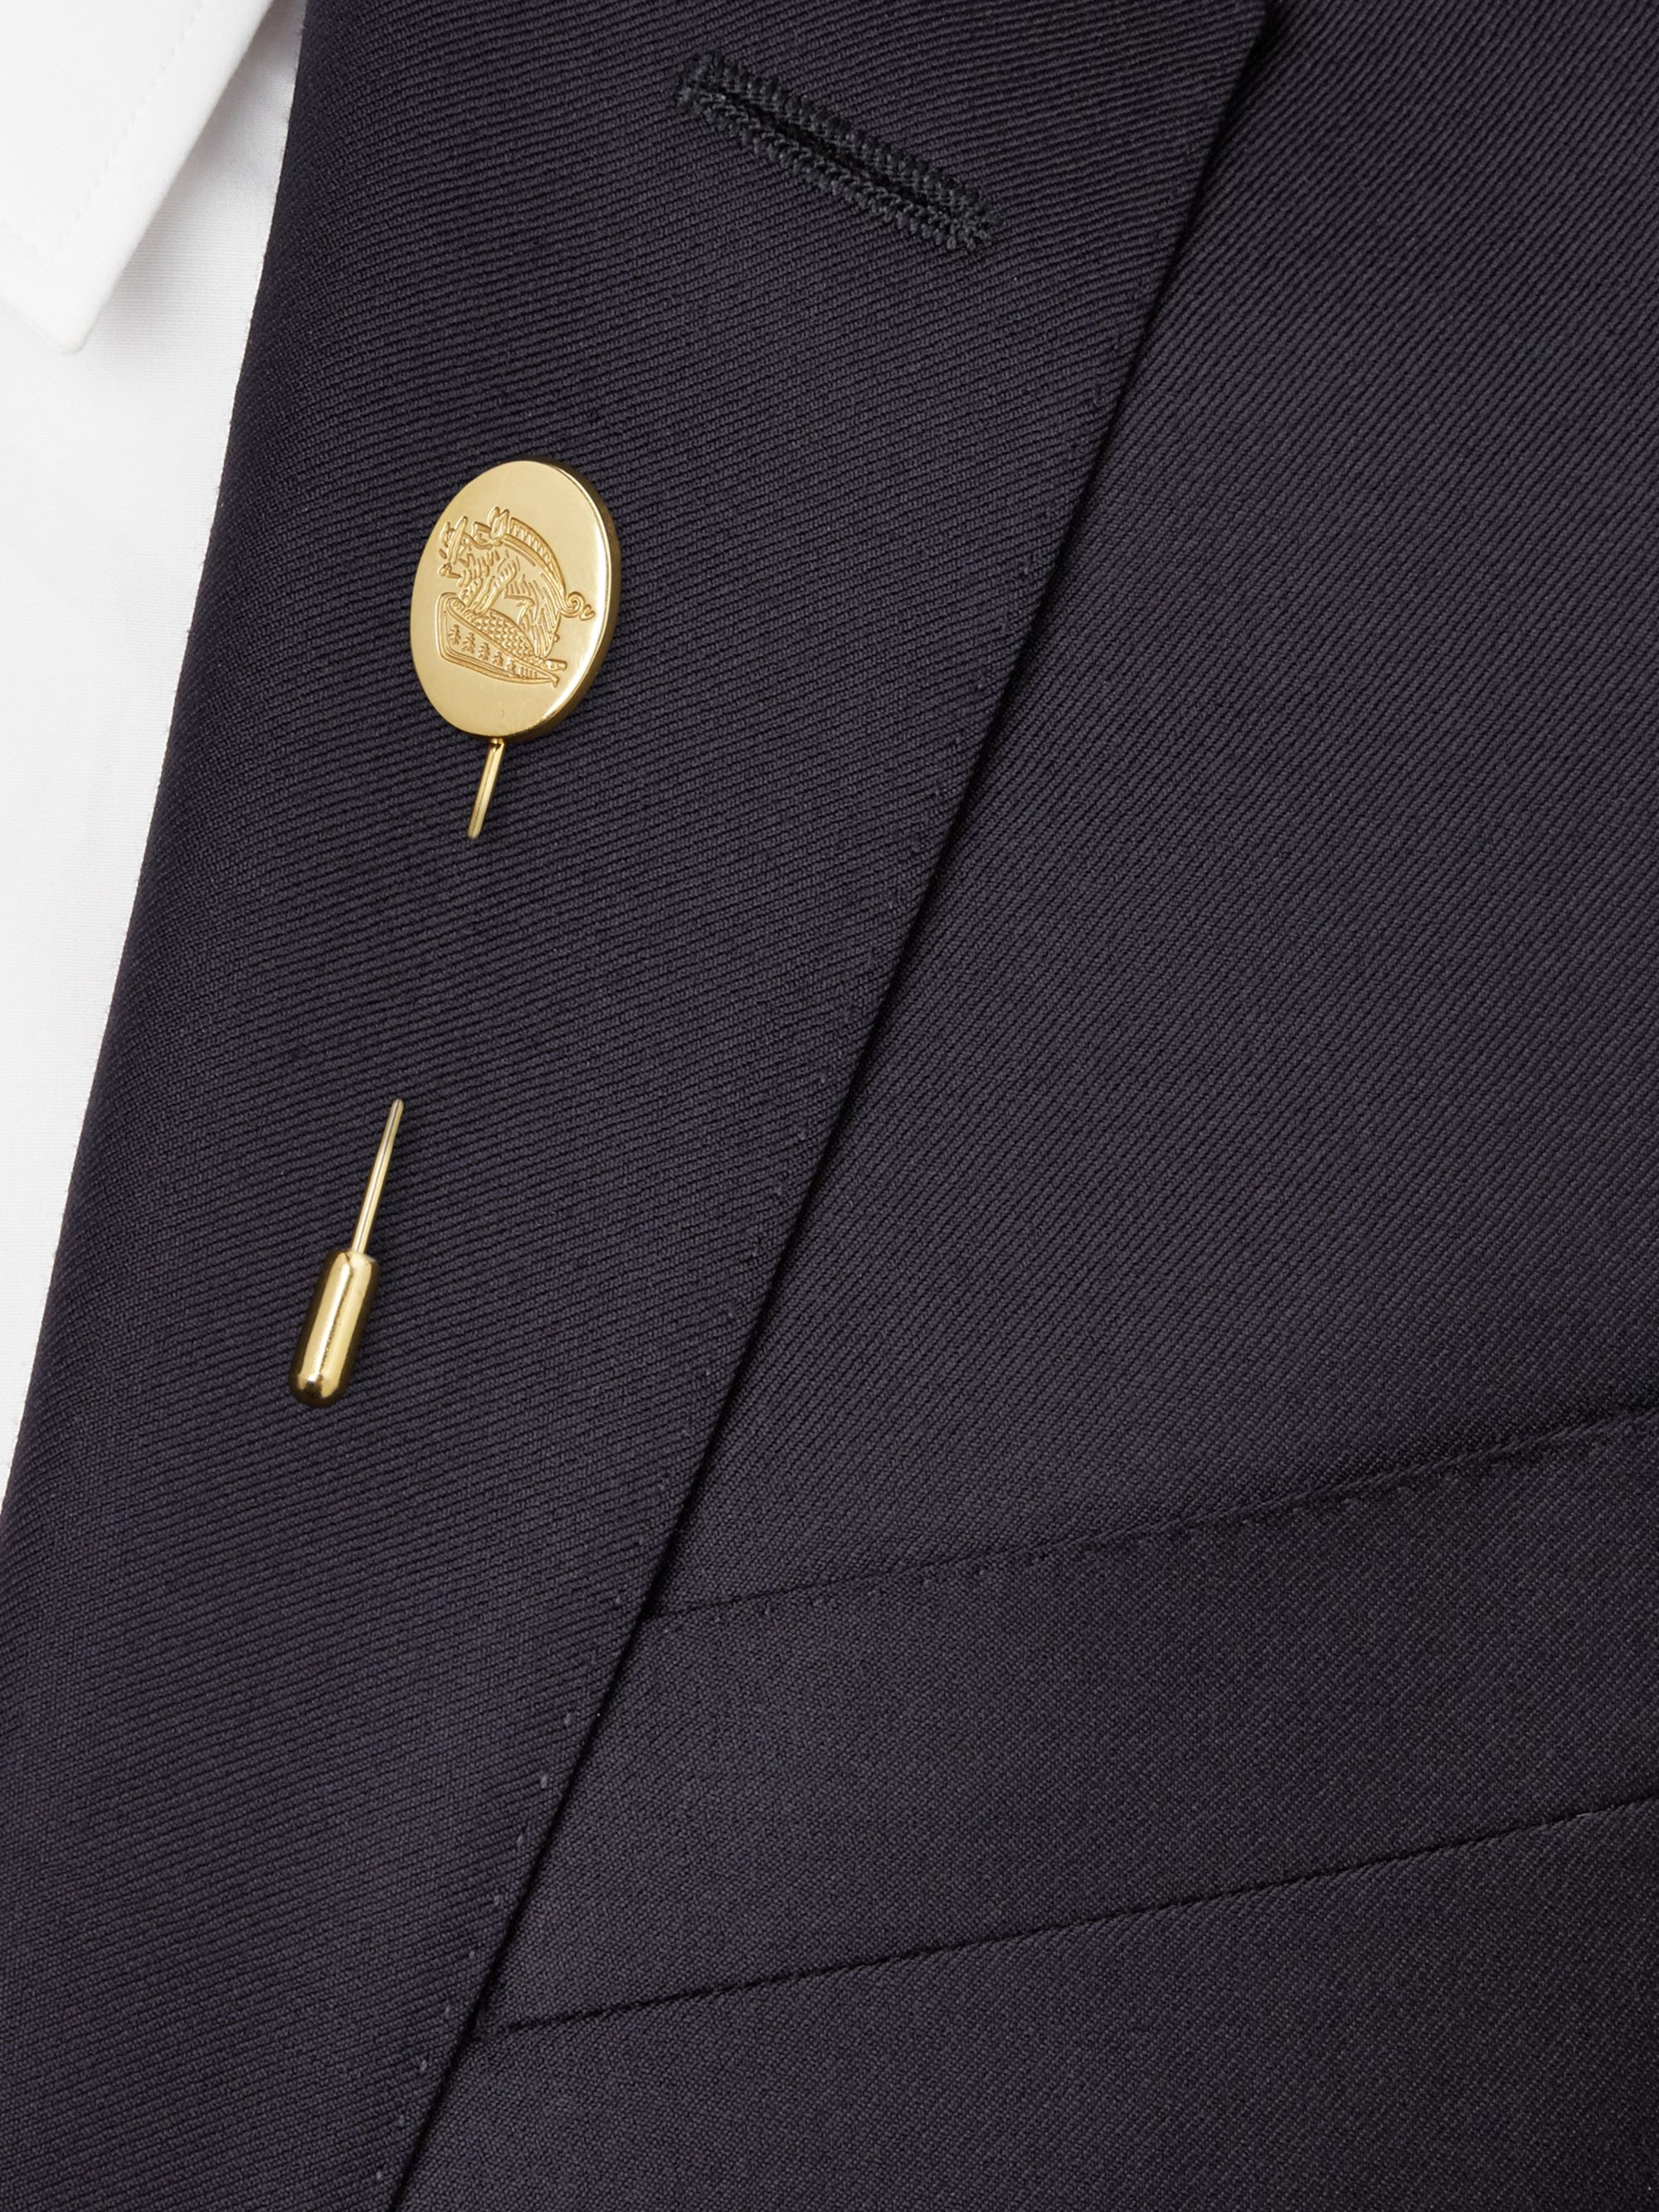 Kingsman + Deakin & Francis Engraved Gold-Plated Tie Pin